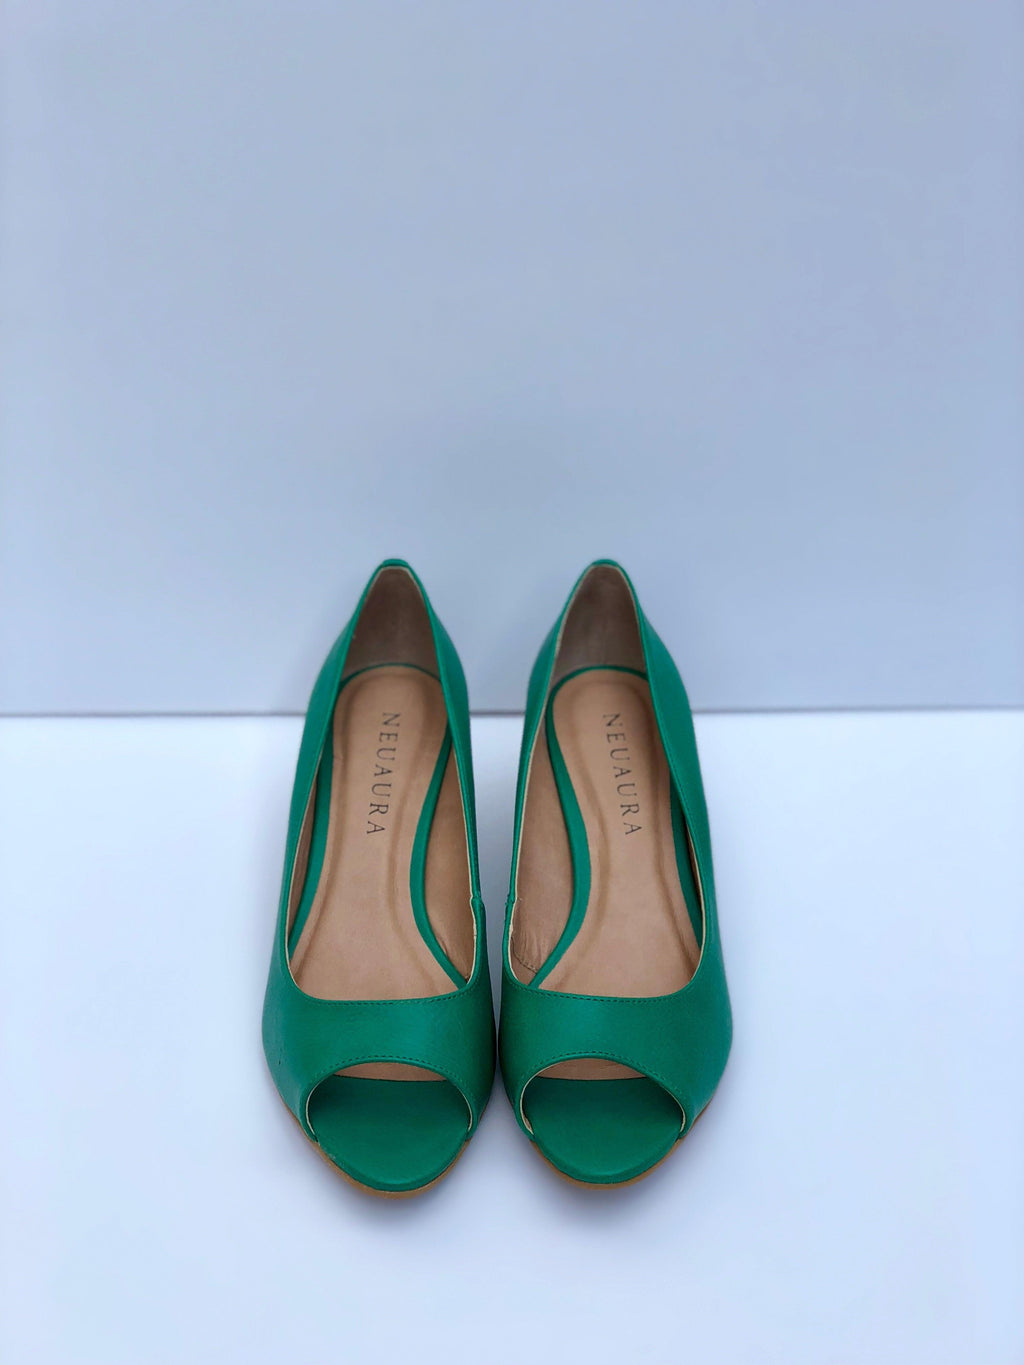 Deep Sea Neuaura Wedges - My Royal Closet